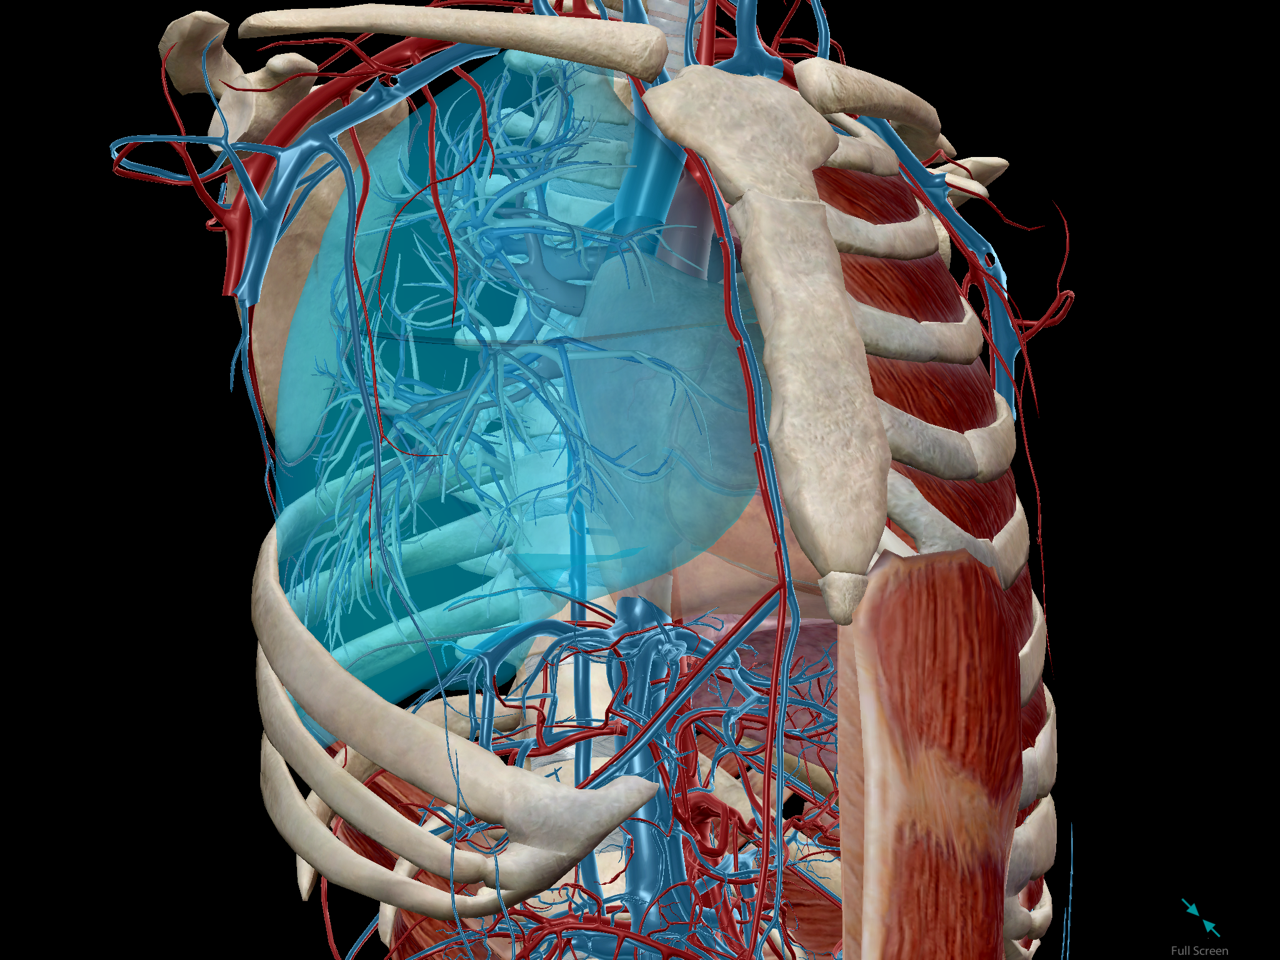 Anatomy and Physiology: The Relationships of the Respiratory System